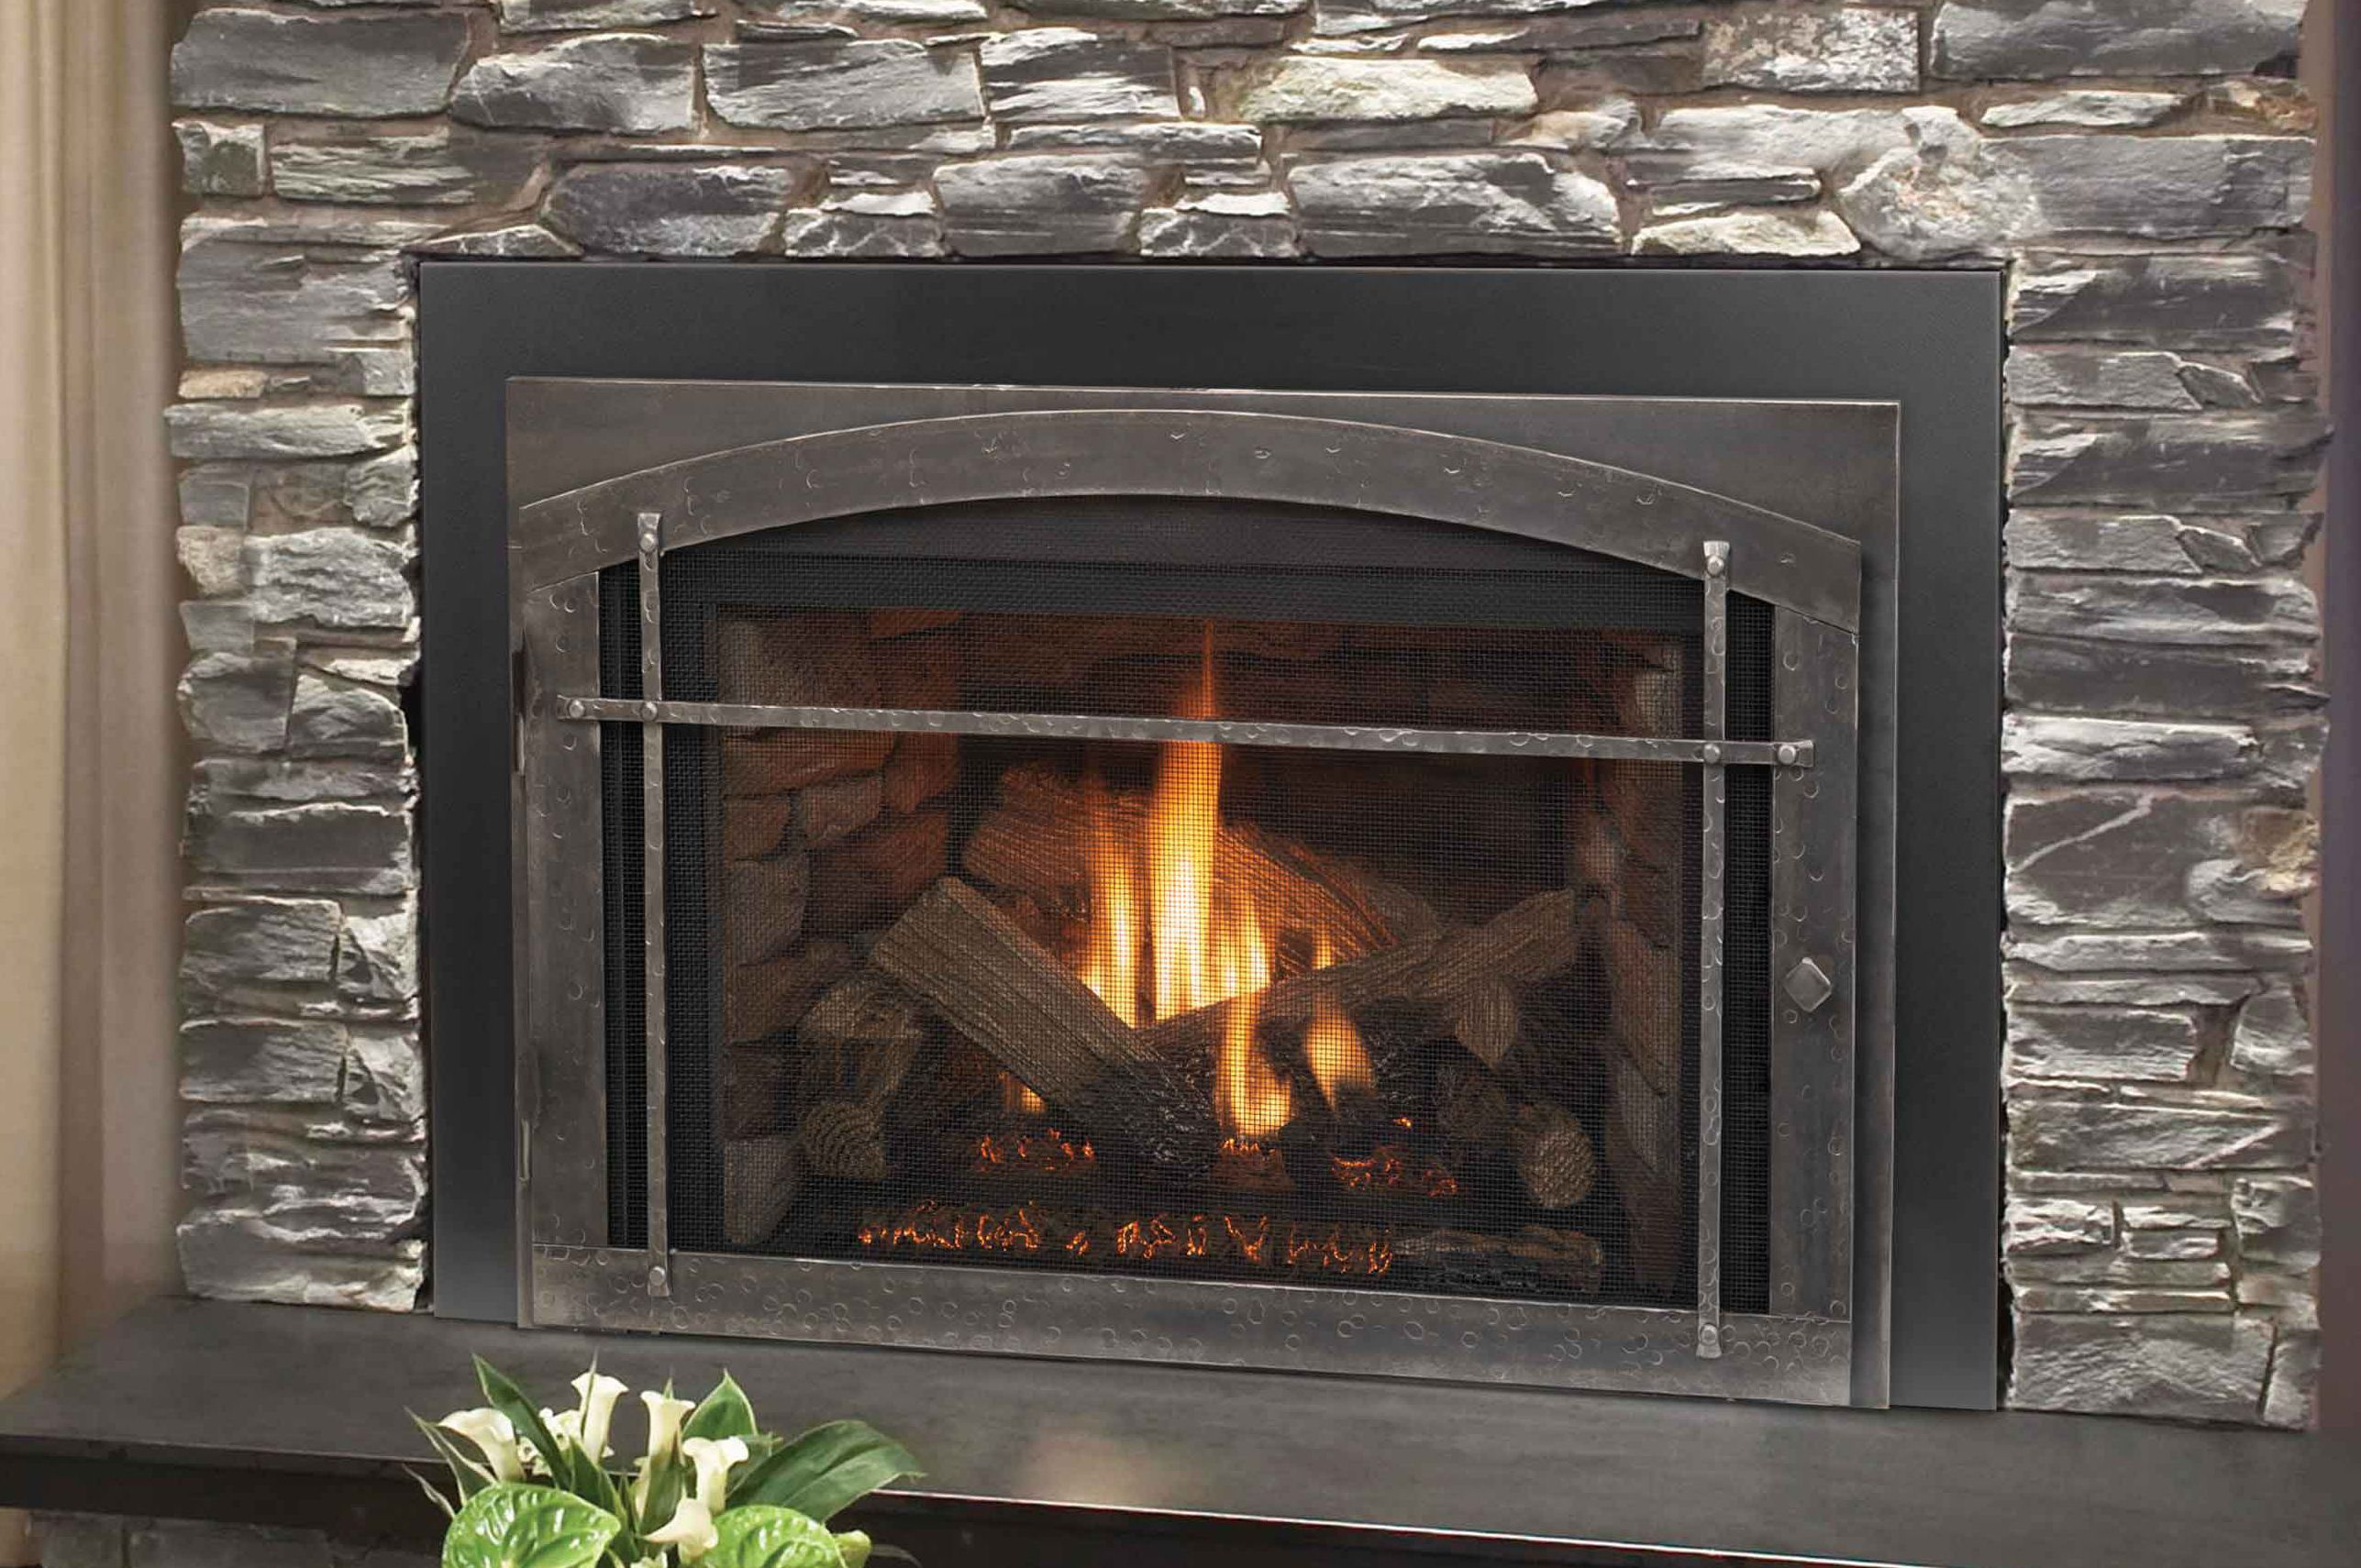 05160d366da1c944b3ef52c51be9f2c8 Top Result 50 Unique Best Wood Fireplace Insert